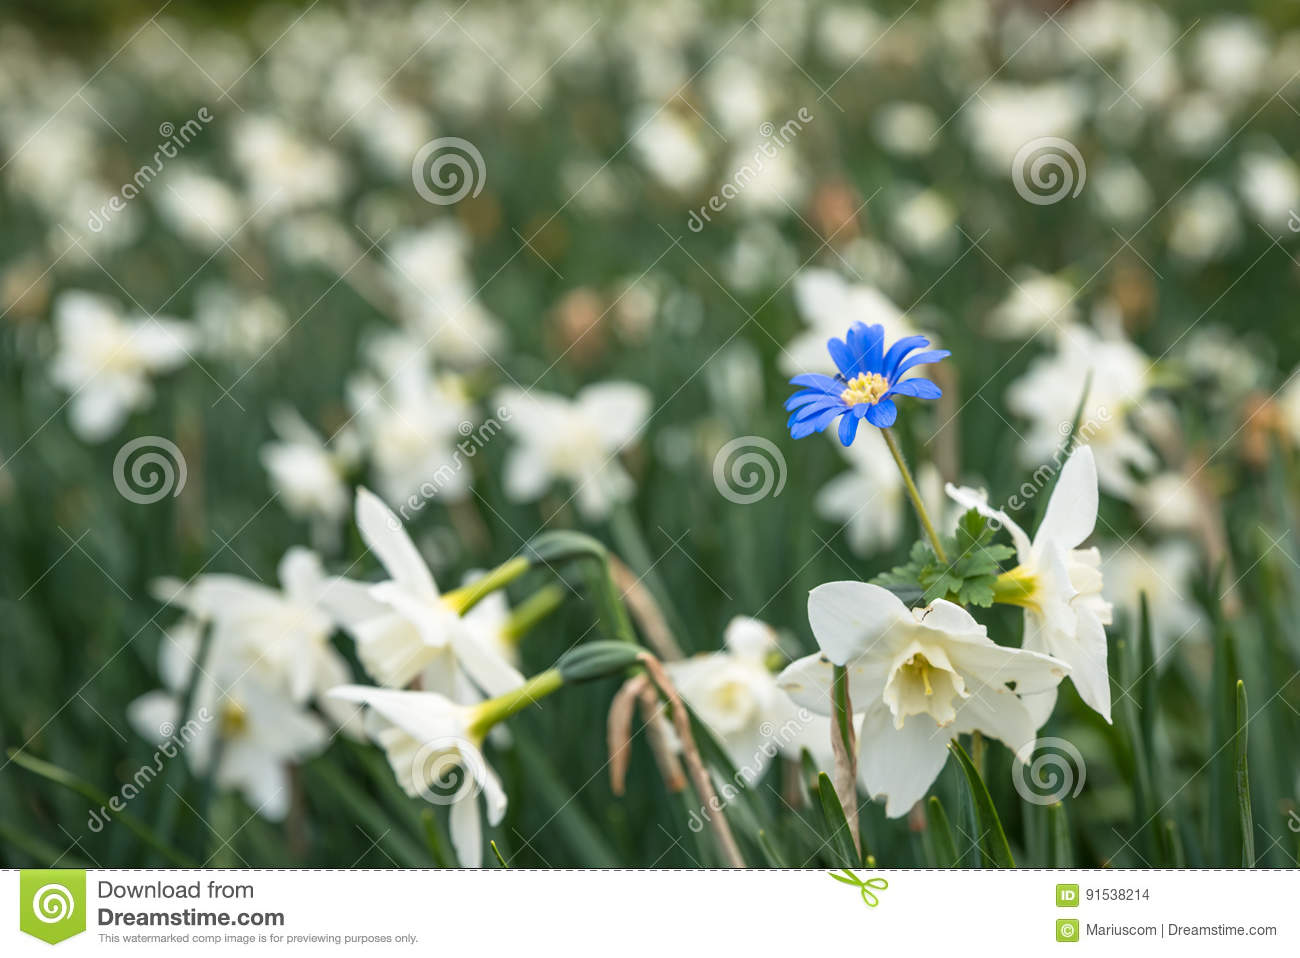 Bright White Flowers With One Blue Being Different Standing Out